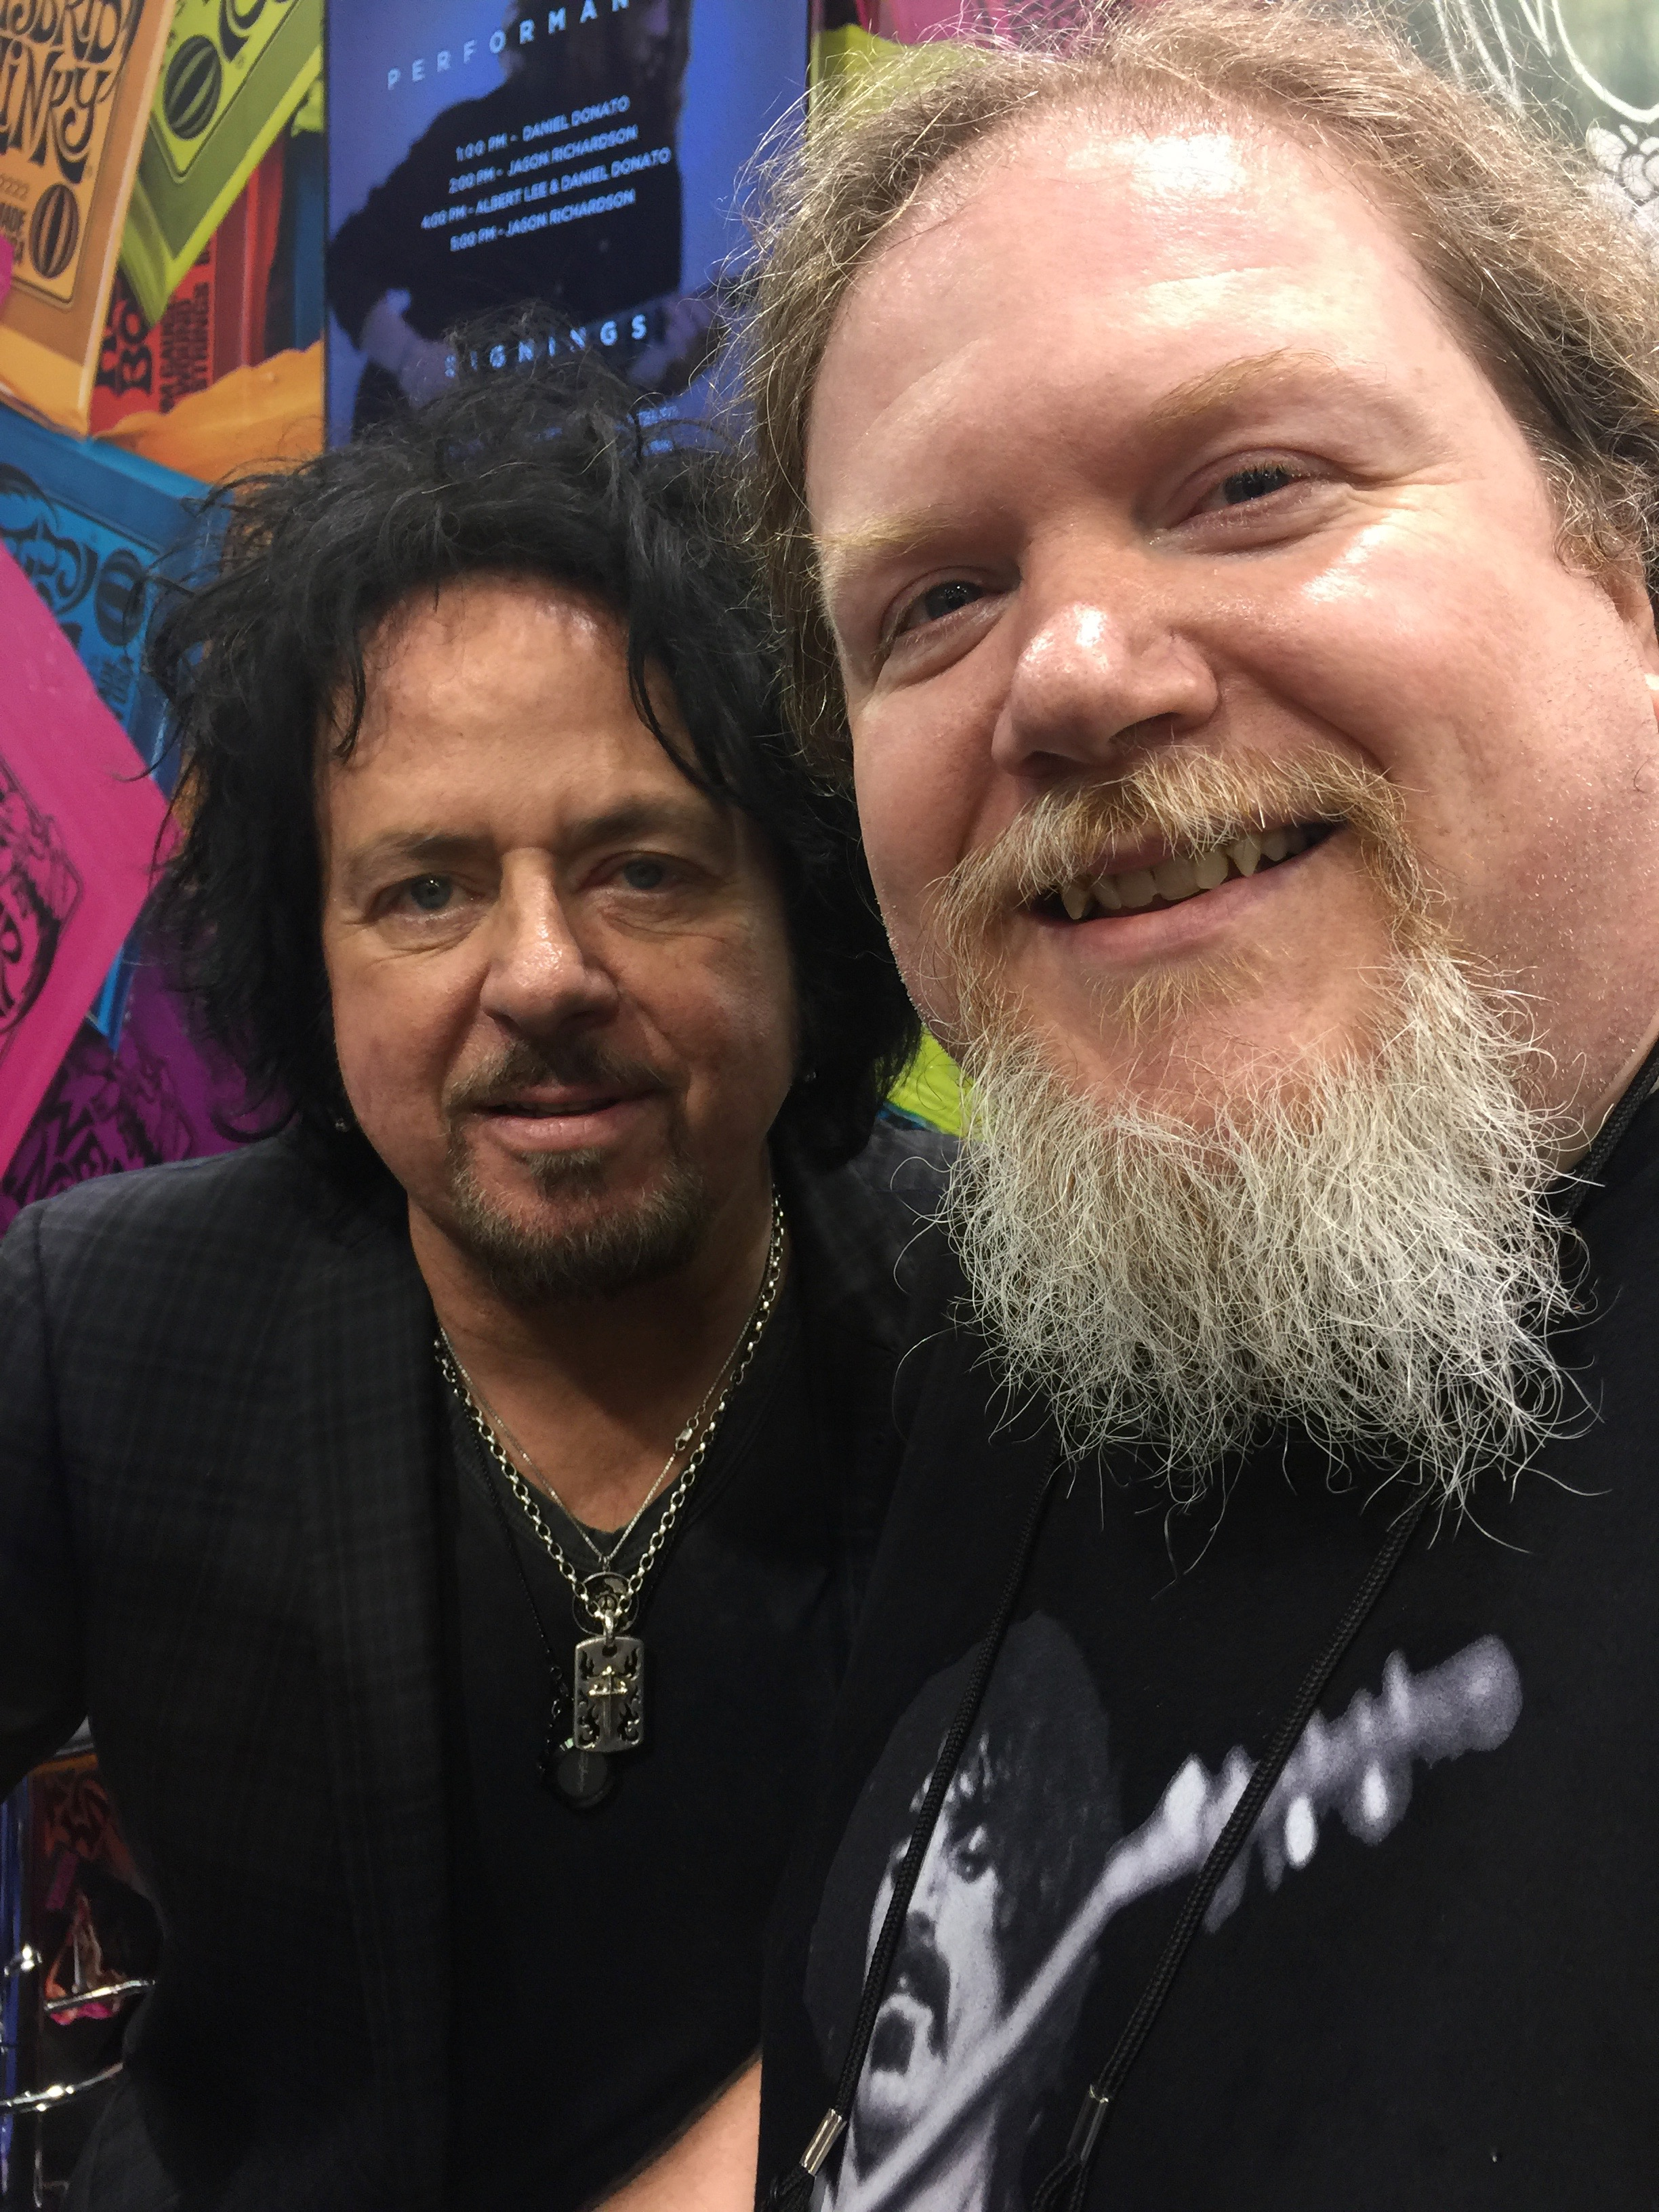 Ben with Steve Lukather